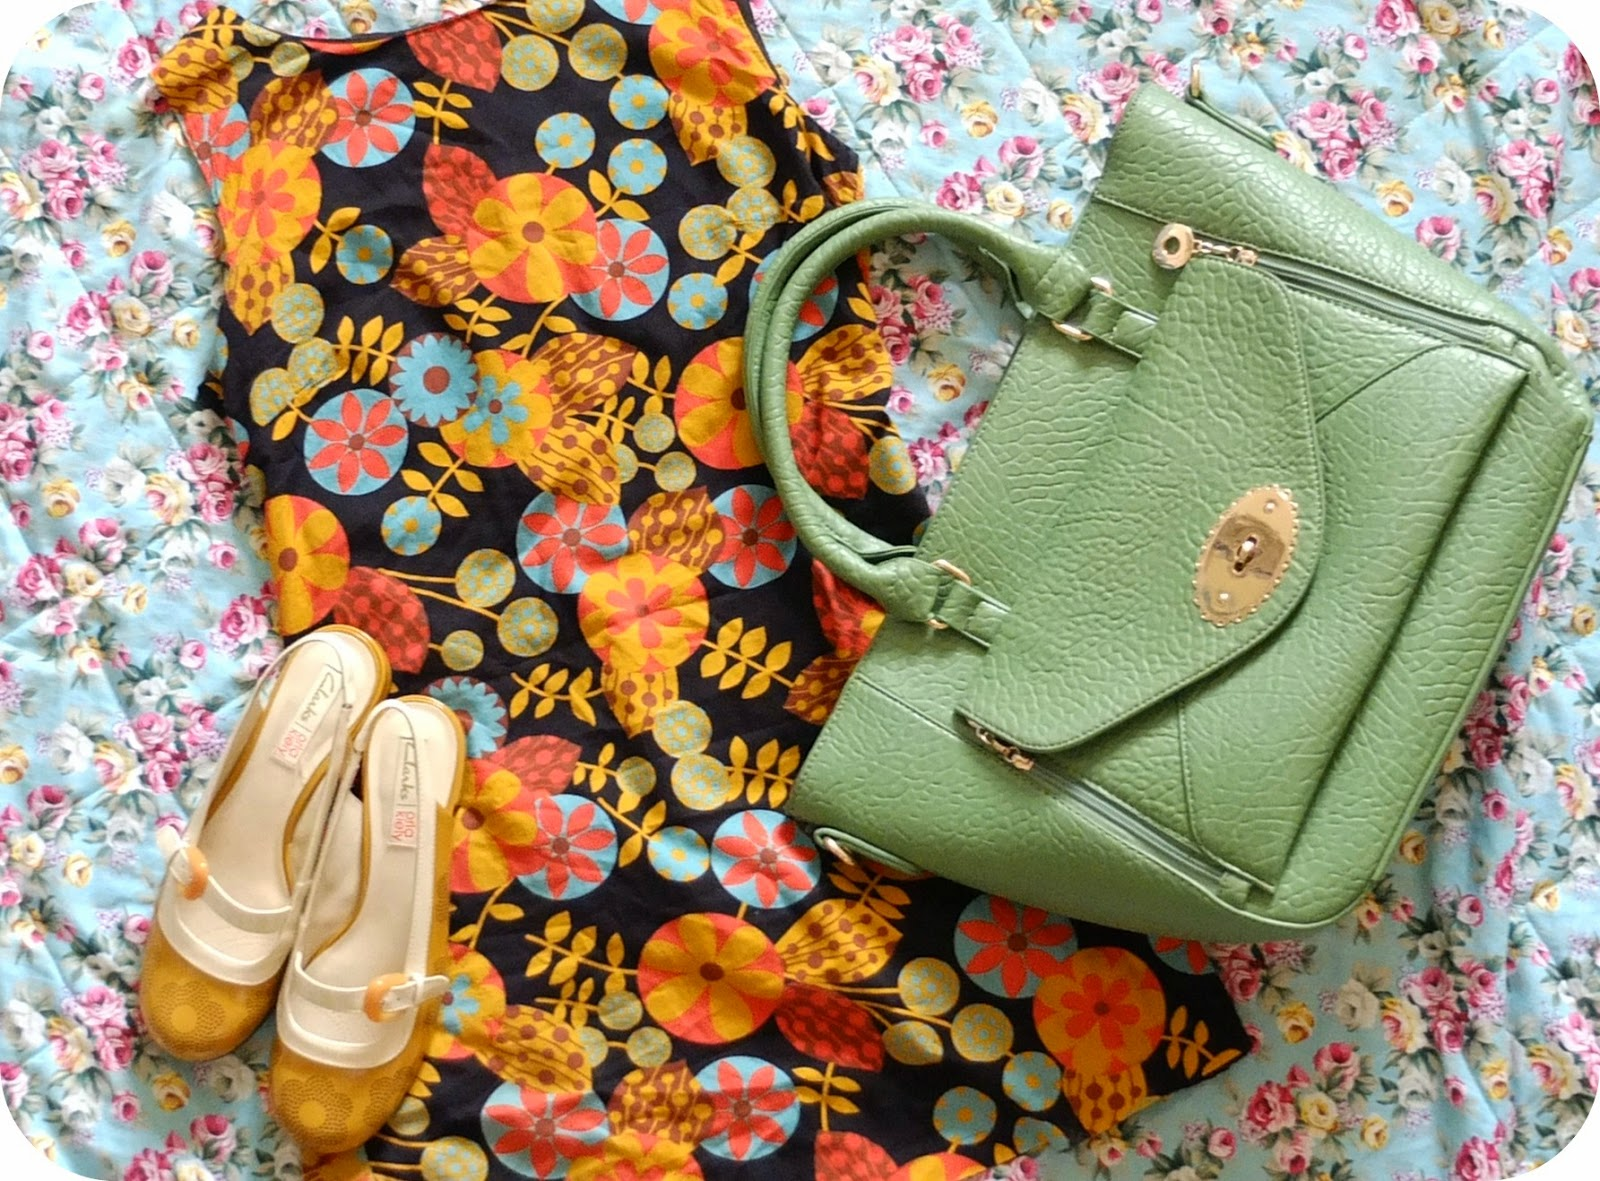 Sixties Style on Hello Terri Lowe Blog: Orla Kiely Clarks Shoes x Primark x Mulberry Style Bag